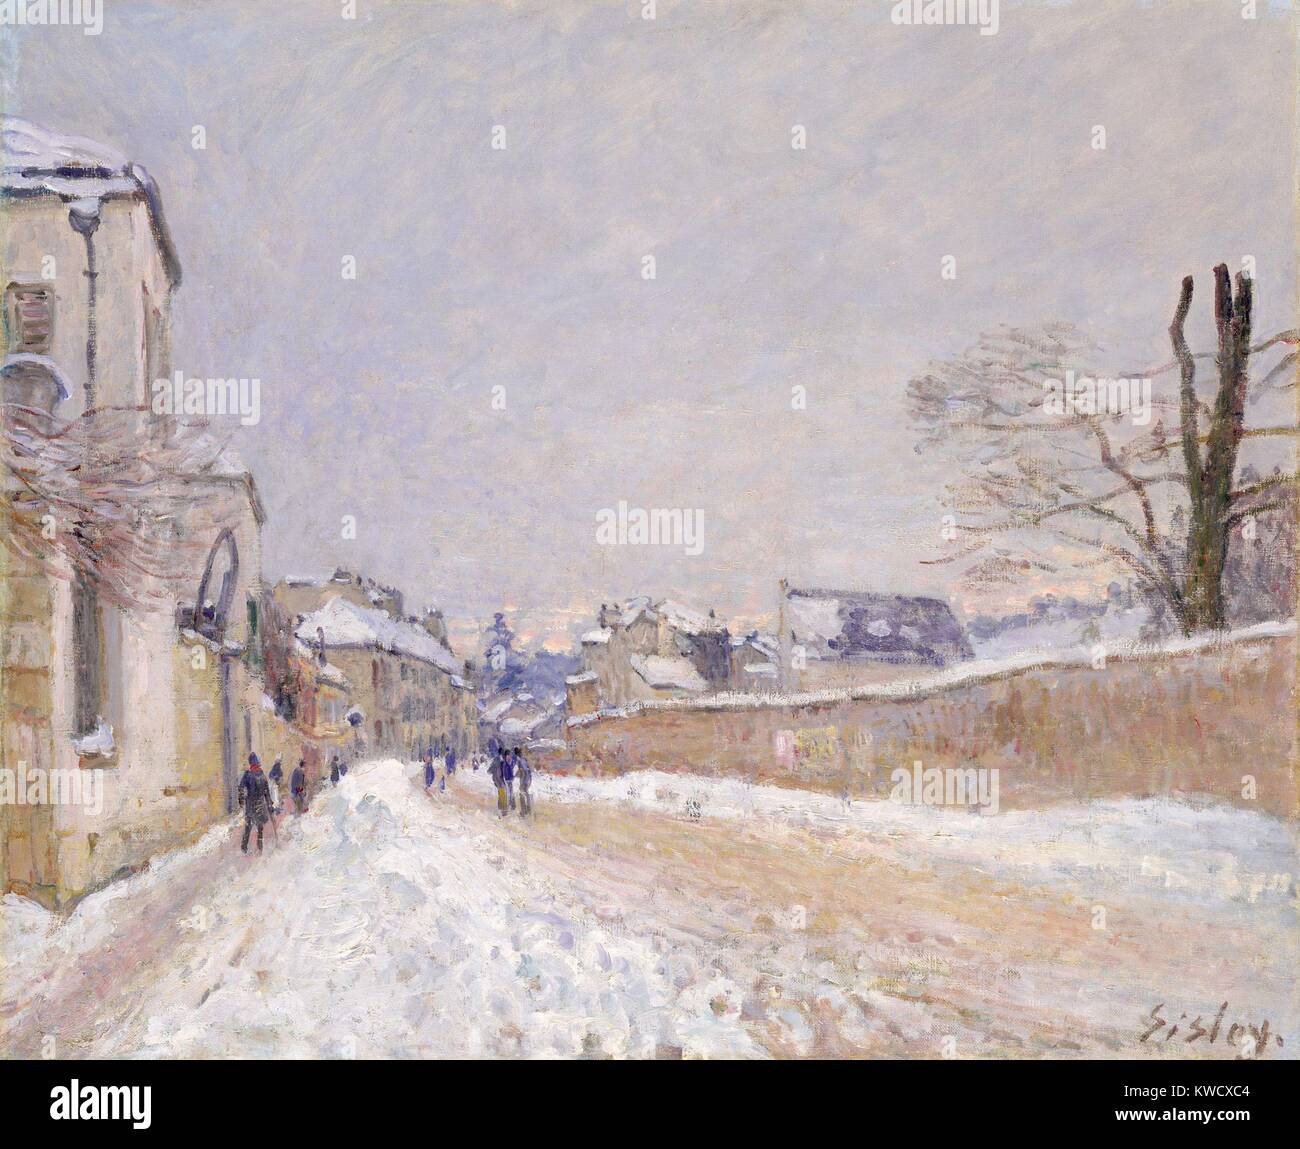 Rue Eugene Moussoir at Moret: Winter, by Alfred Sisley, 1891, French impressionist oil painting. Sisley painted - Stock Image